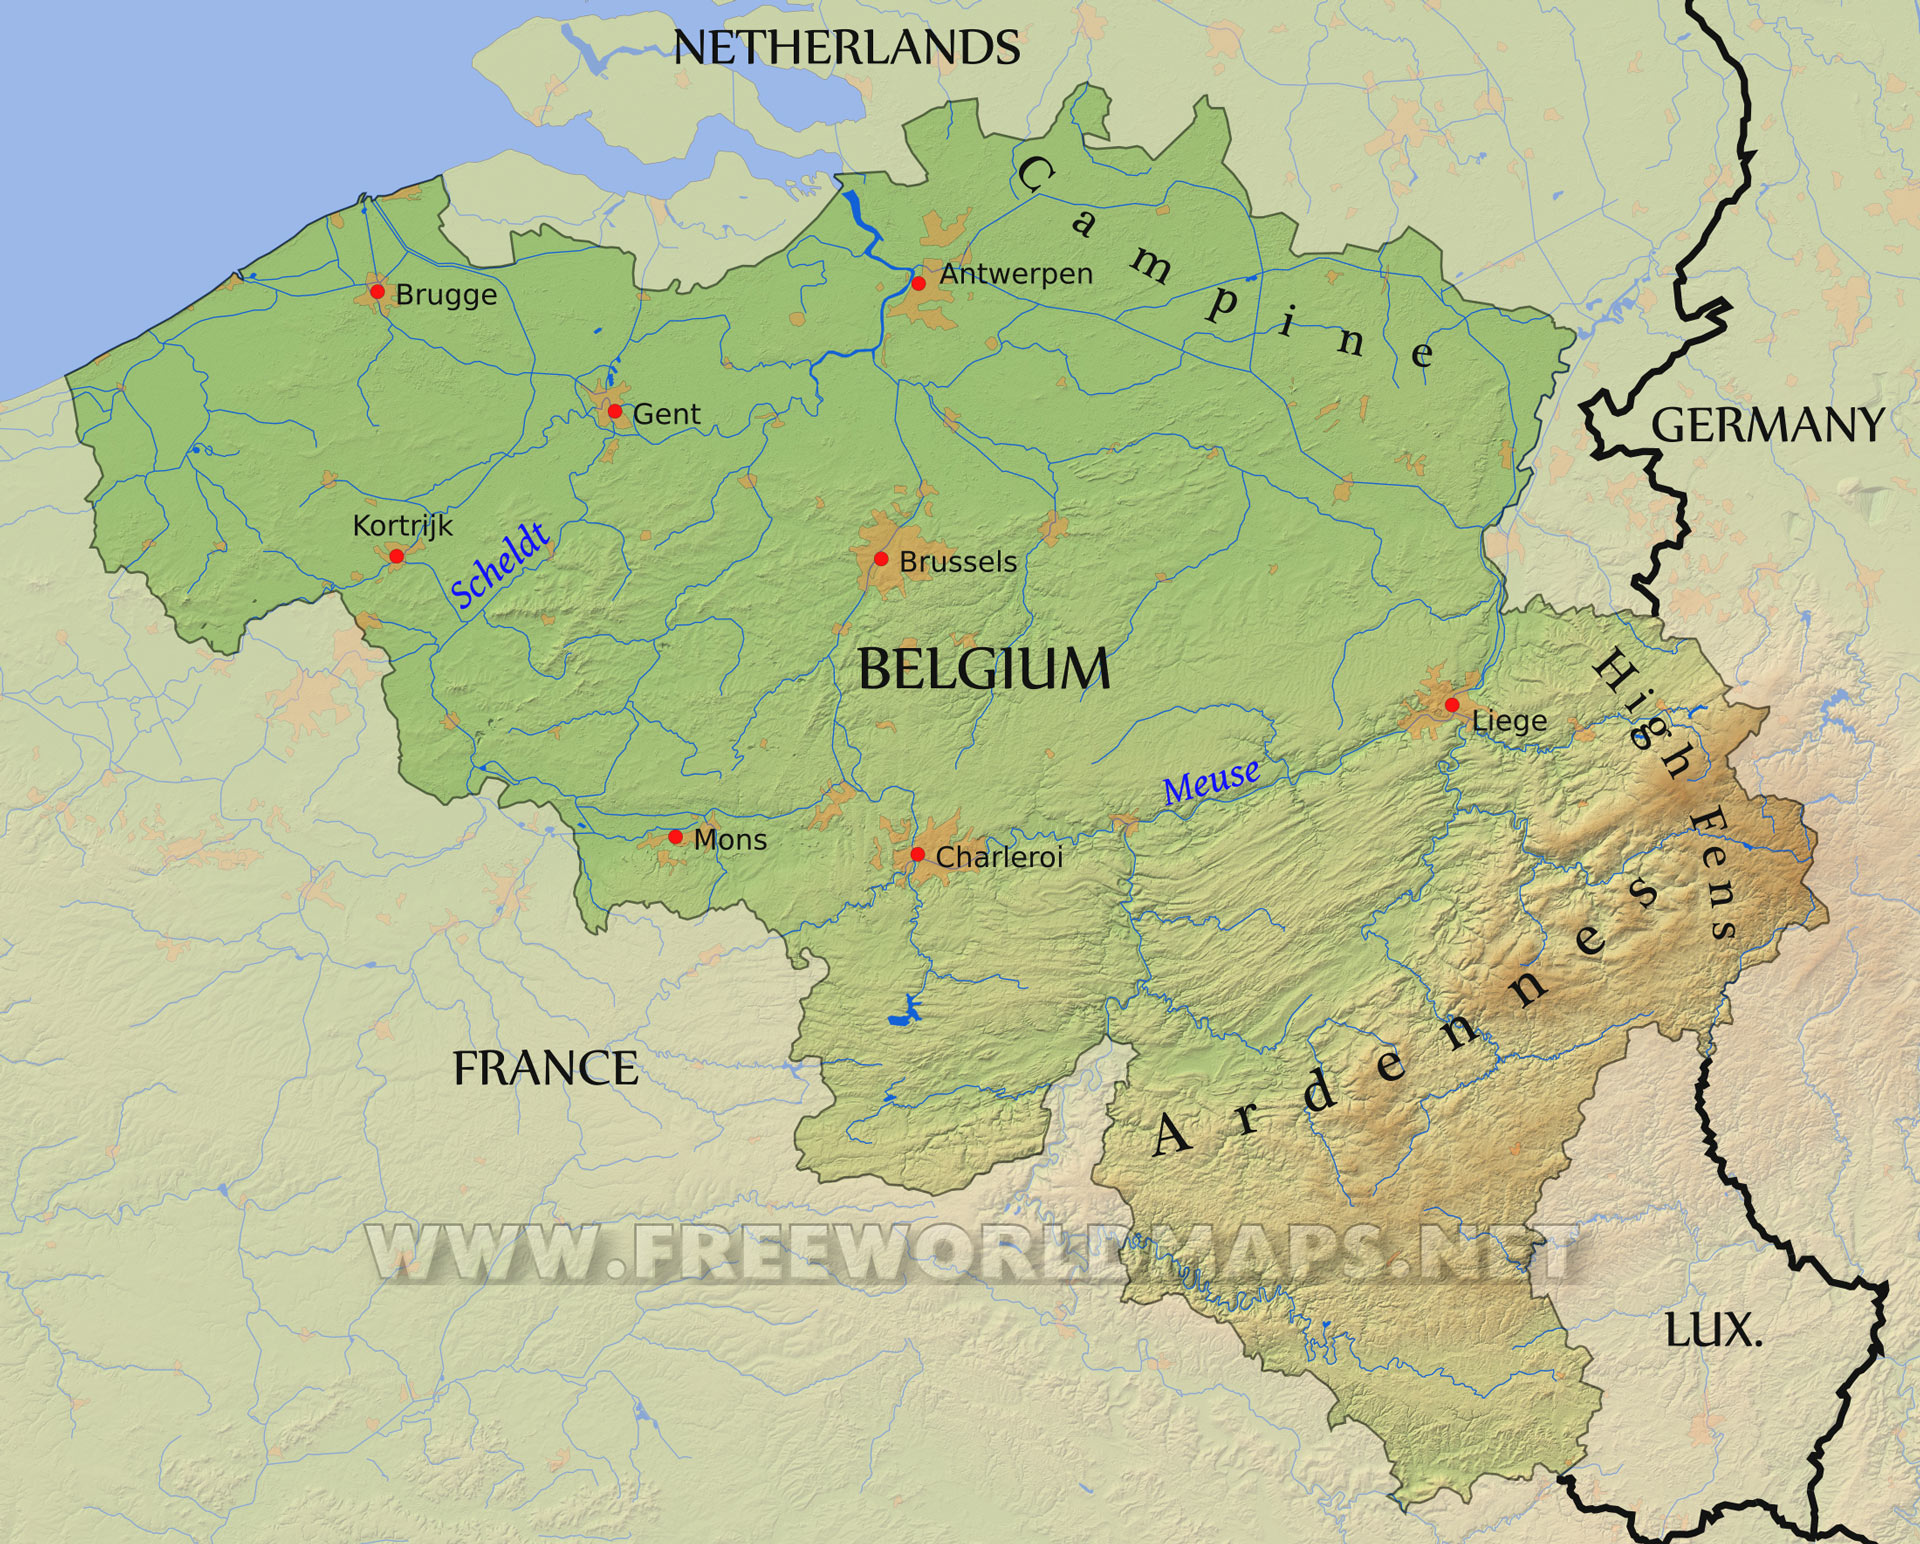 Absolute Location Of Brussels N E ThingLink - Germany map hd image